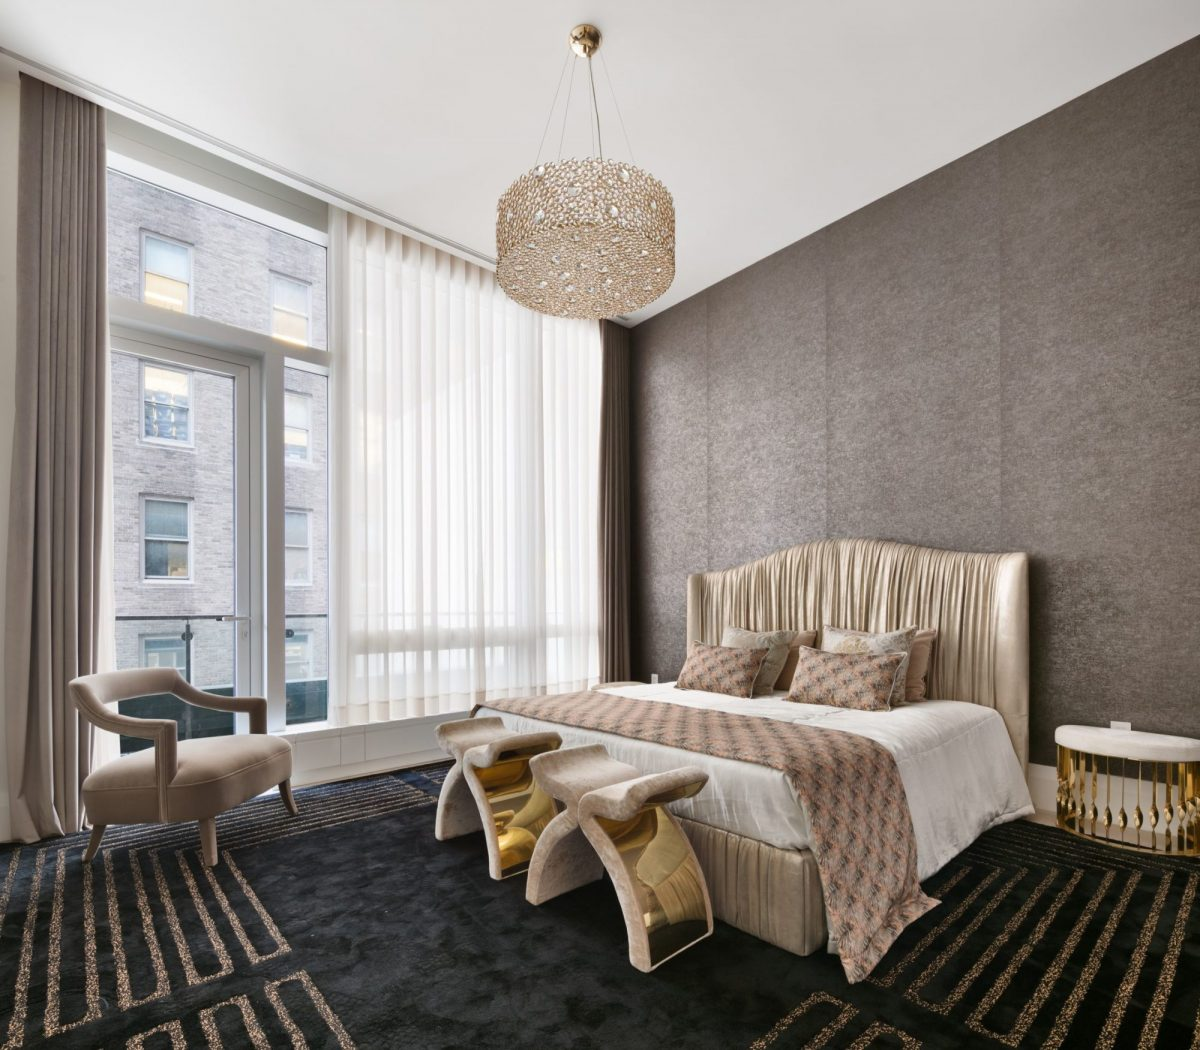 2covet-house_nyc-_-imponent-master-bedroom-1200x1200.jpg